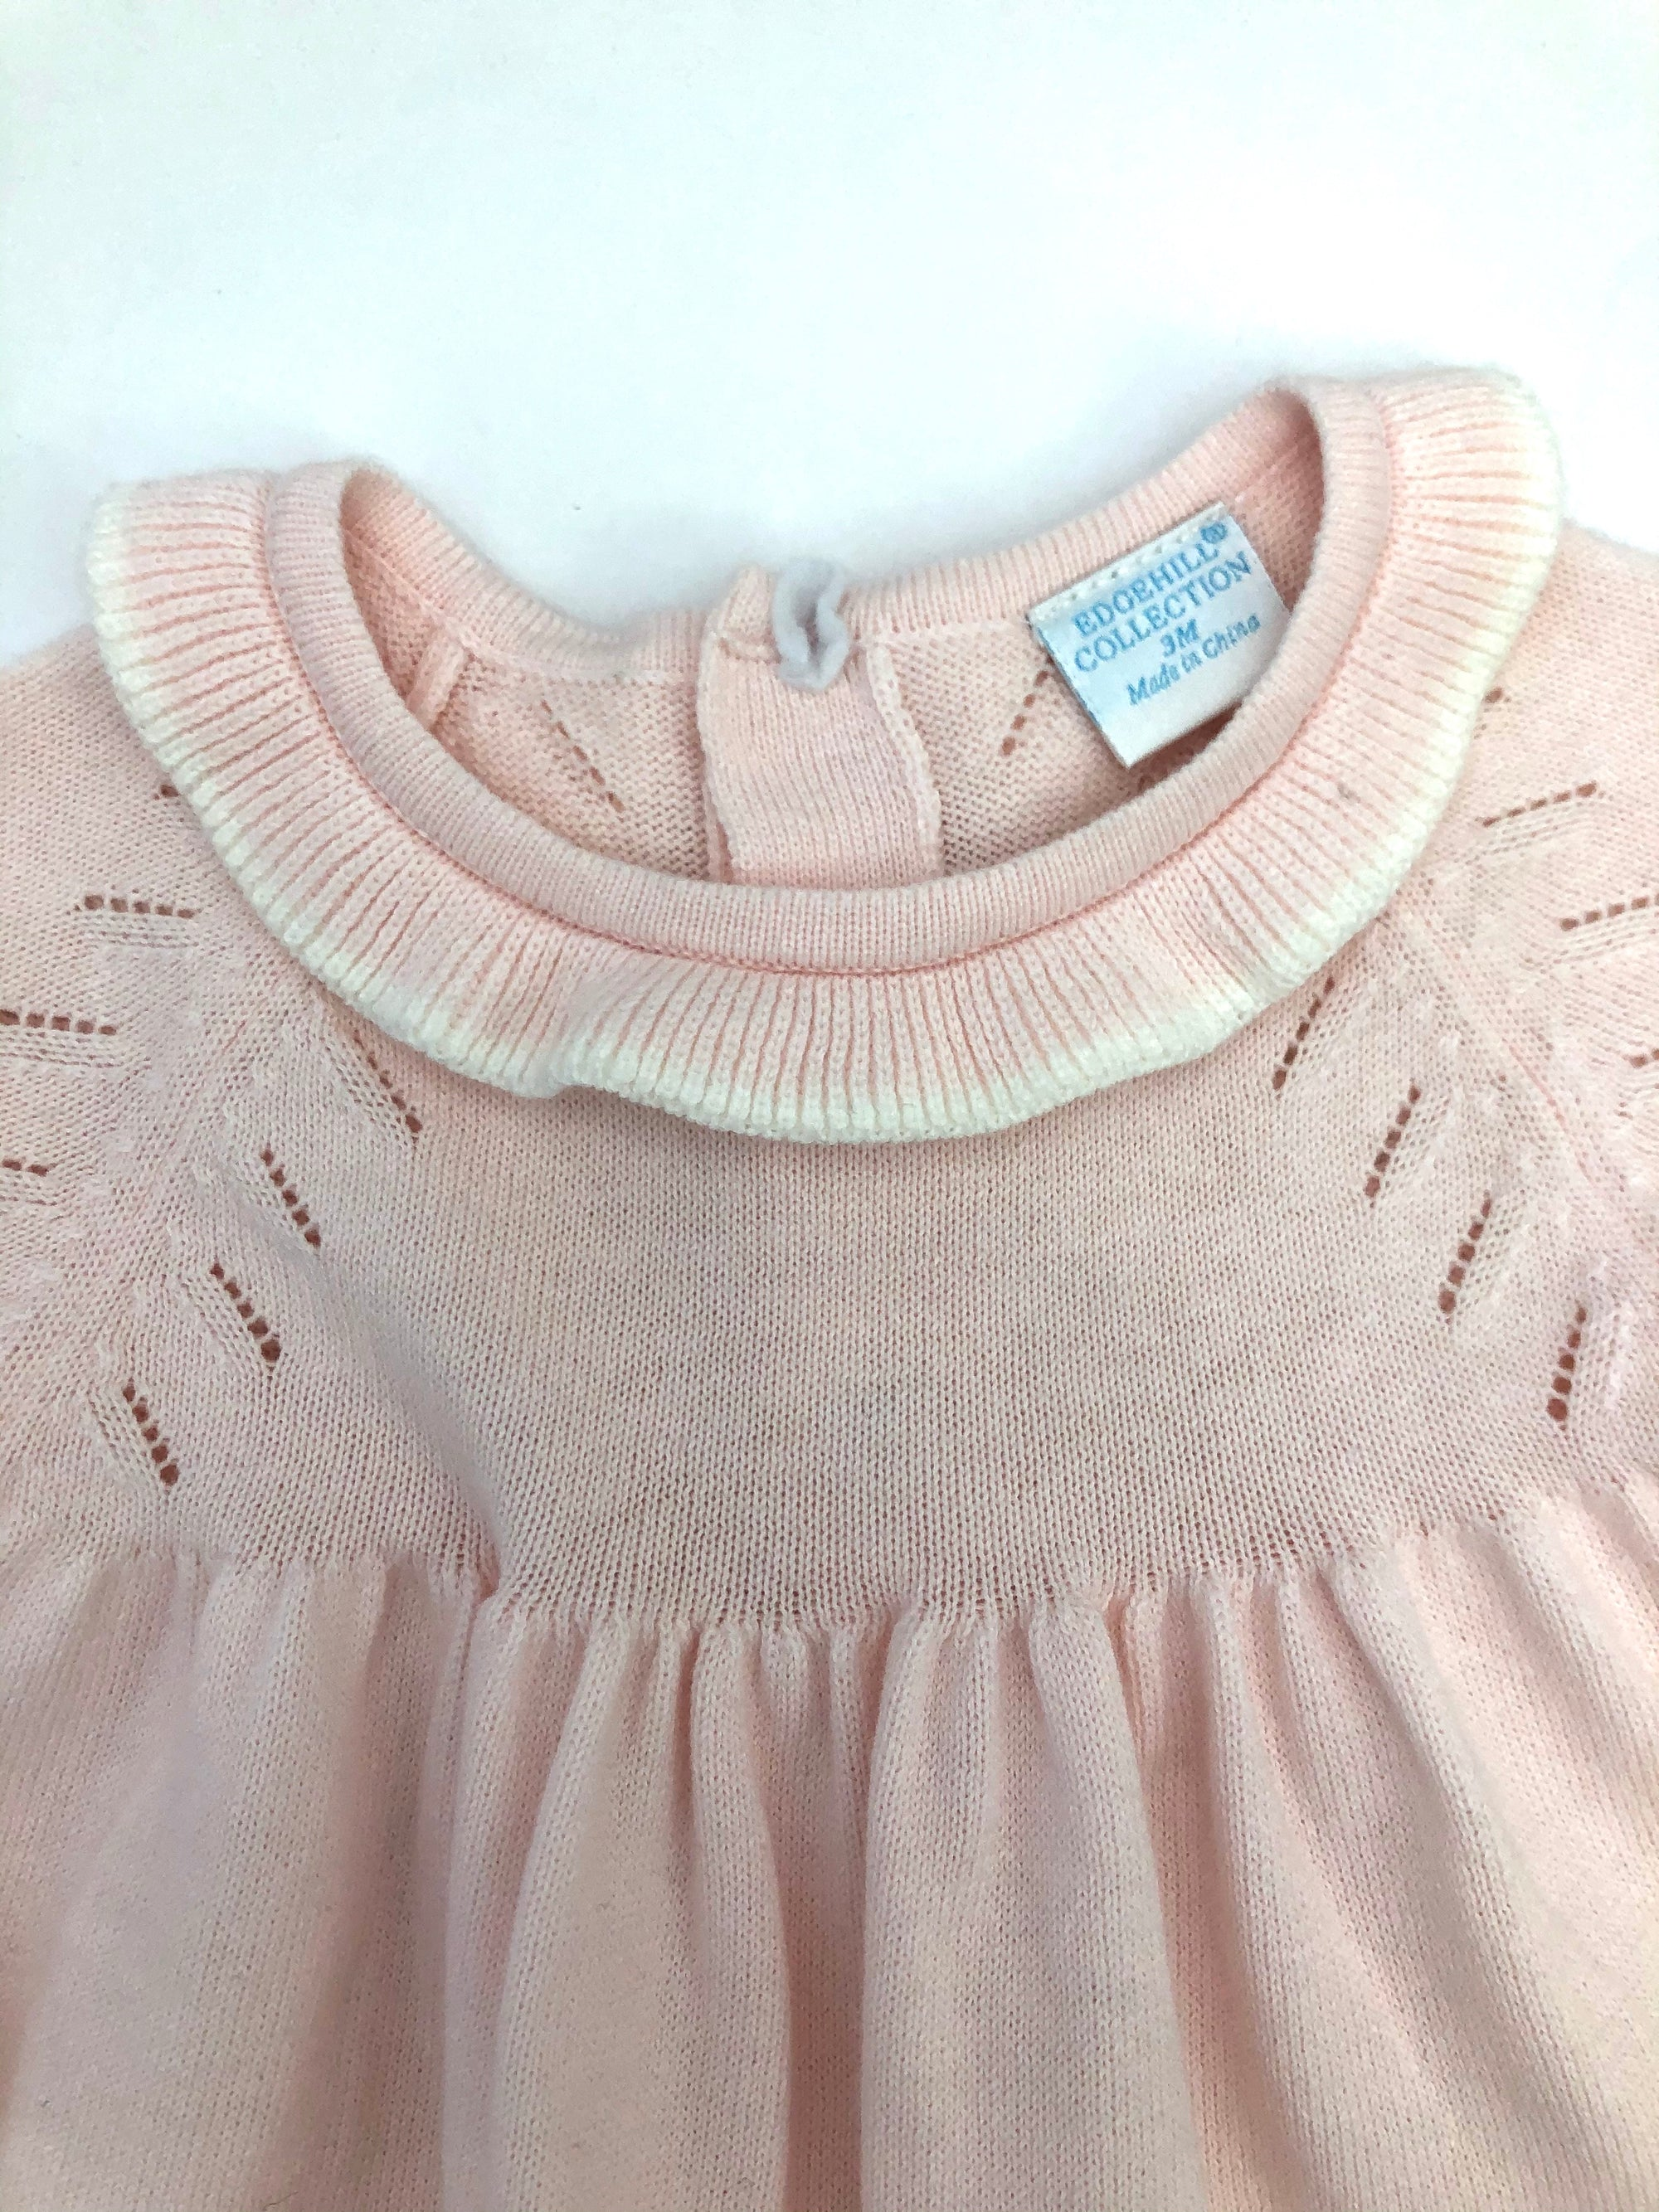 Resale 3 m Edgehill Collection Pink Sweater Dress and Bloomers